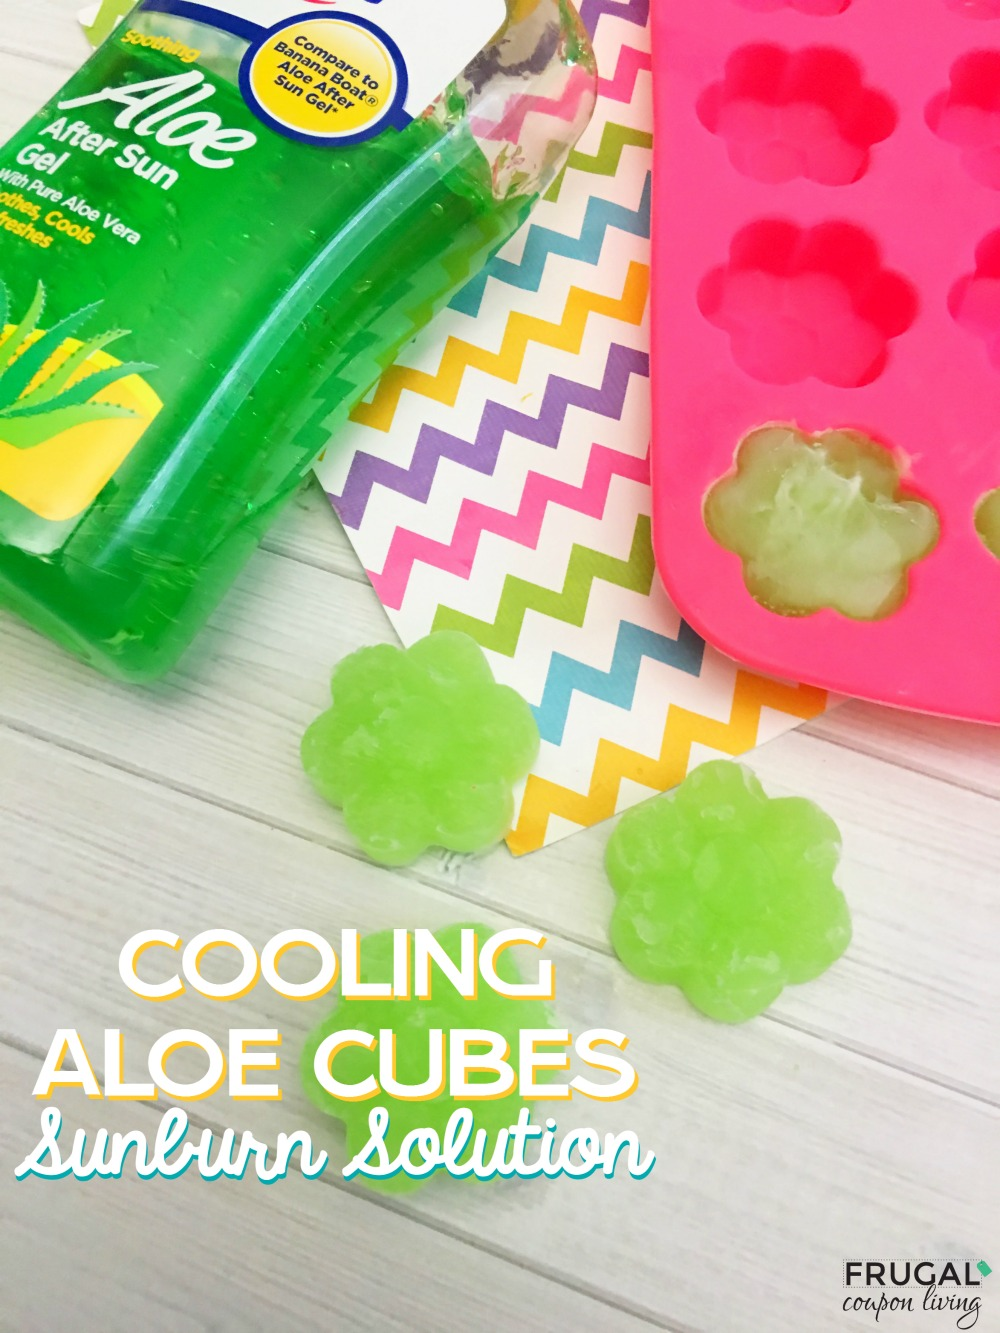 cooling-aloe-cubes-frugal-coupon-living